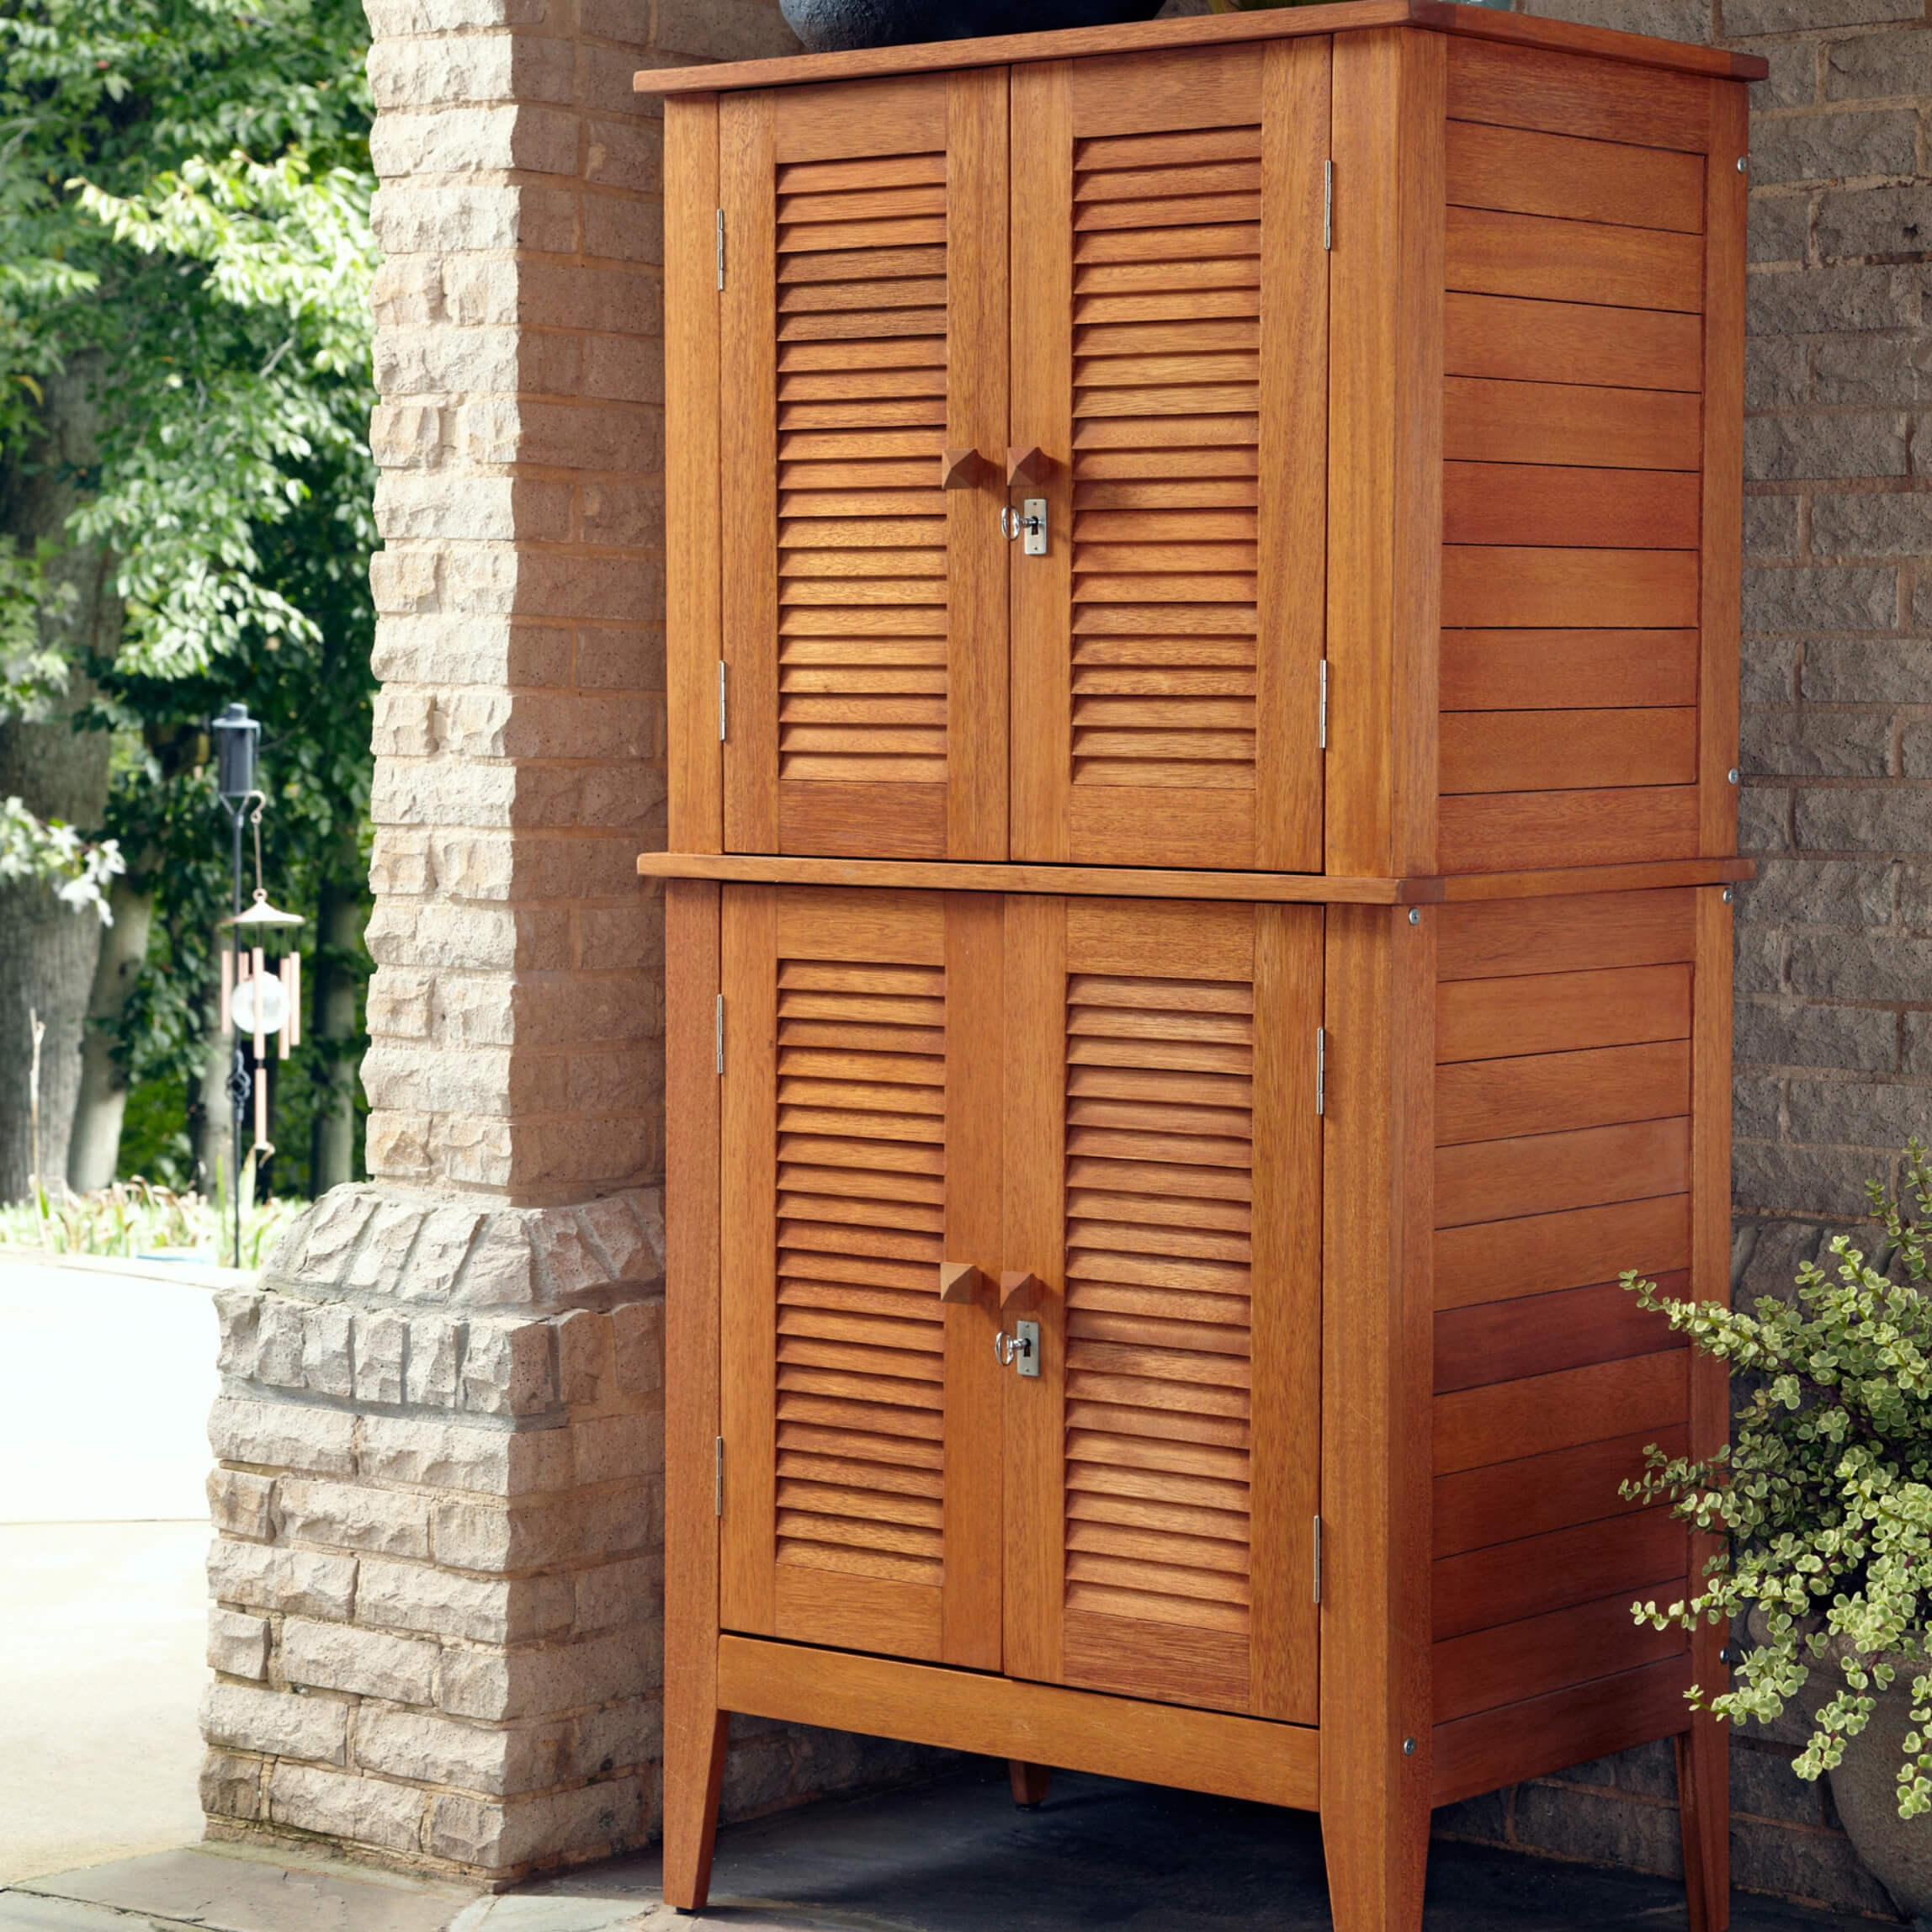 Top 10 Types Of Outdoor Deck Storage Boxes inside proportions 2296 X 2296